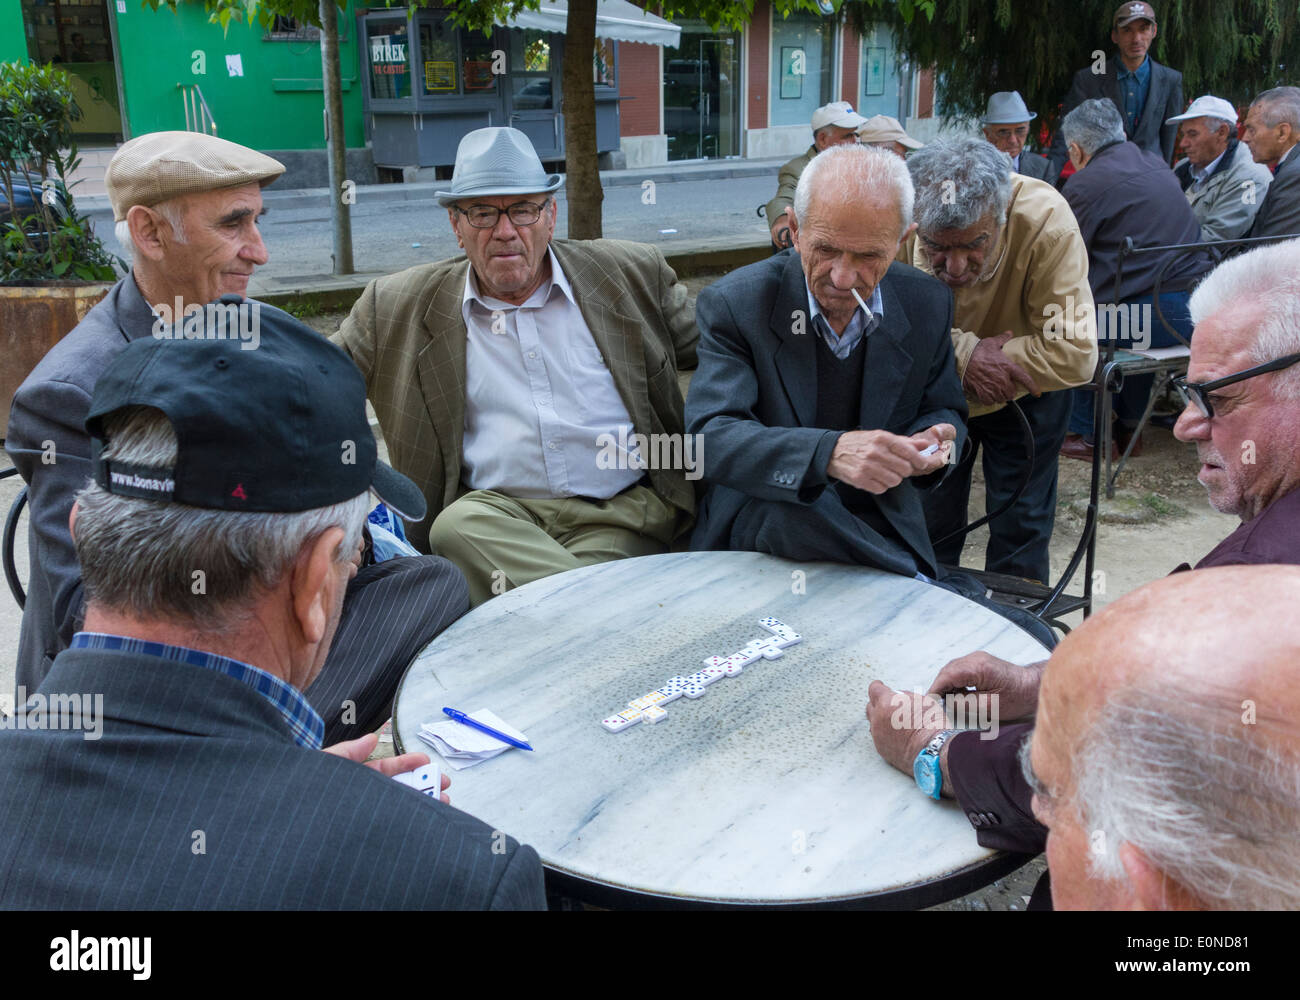 men playing dominoes, Tirana, Albania - Stock Image